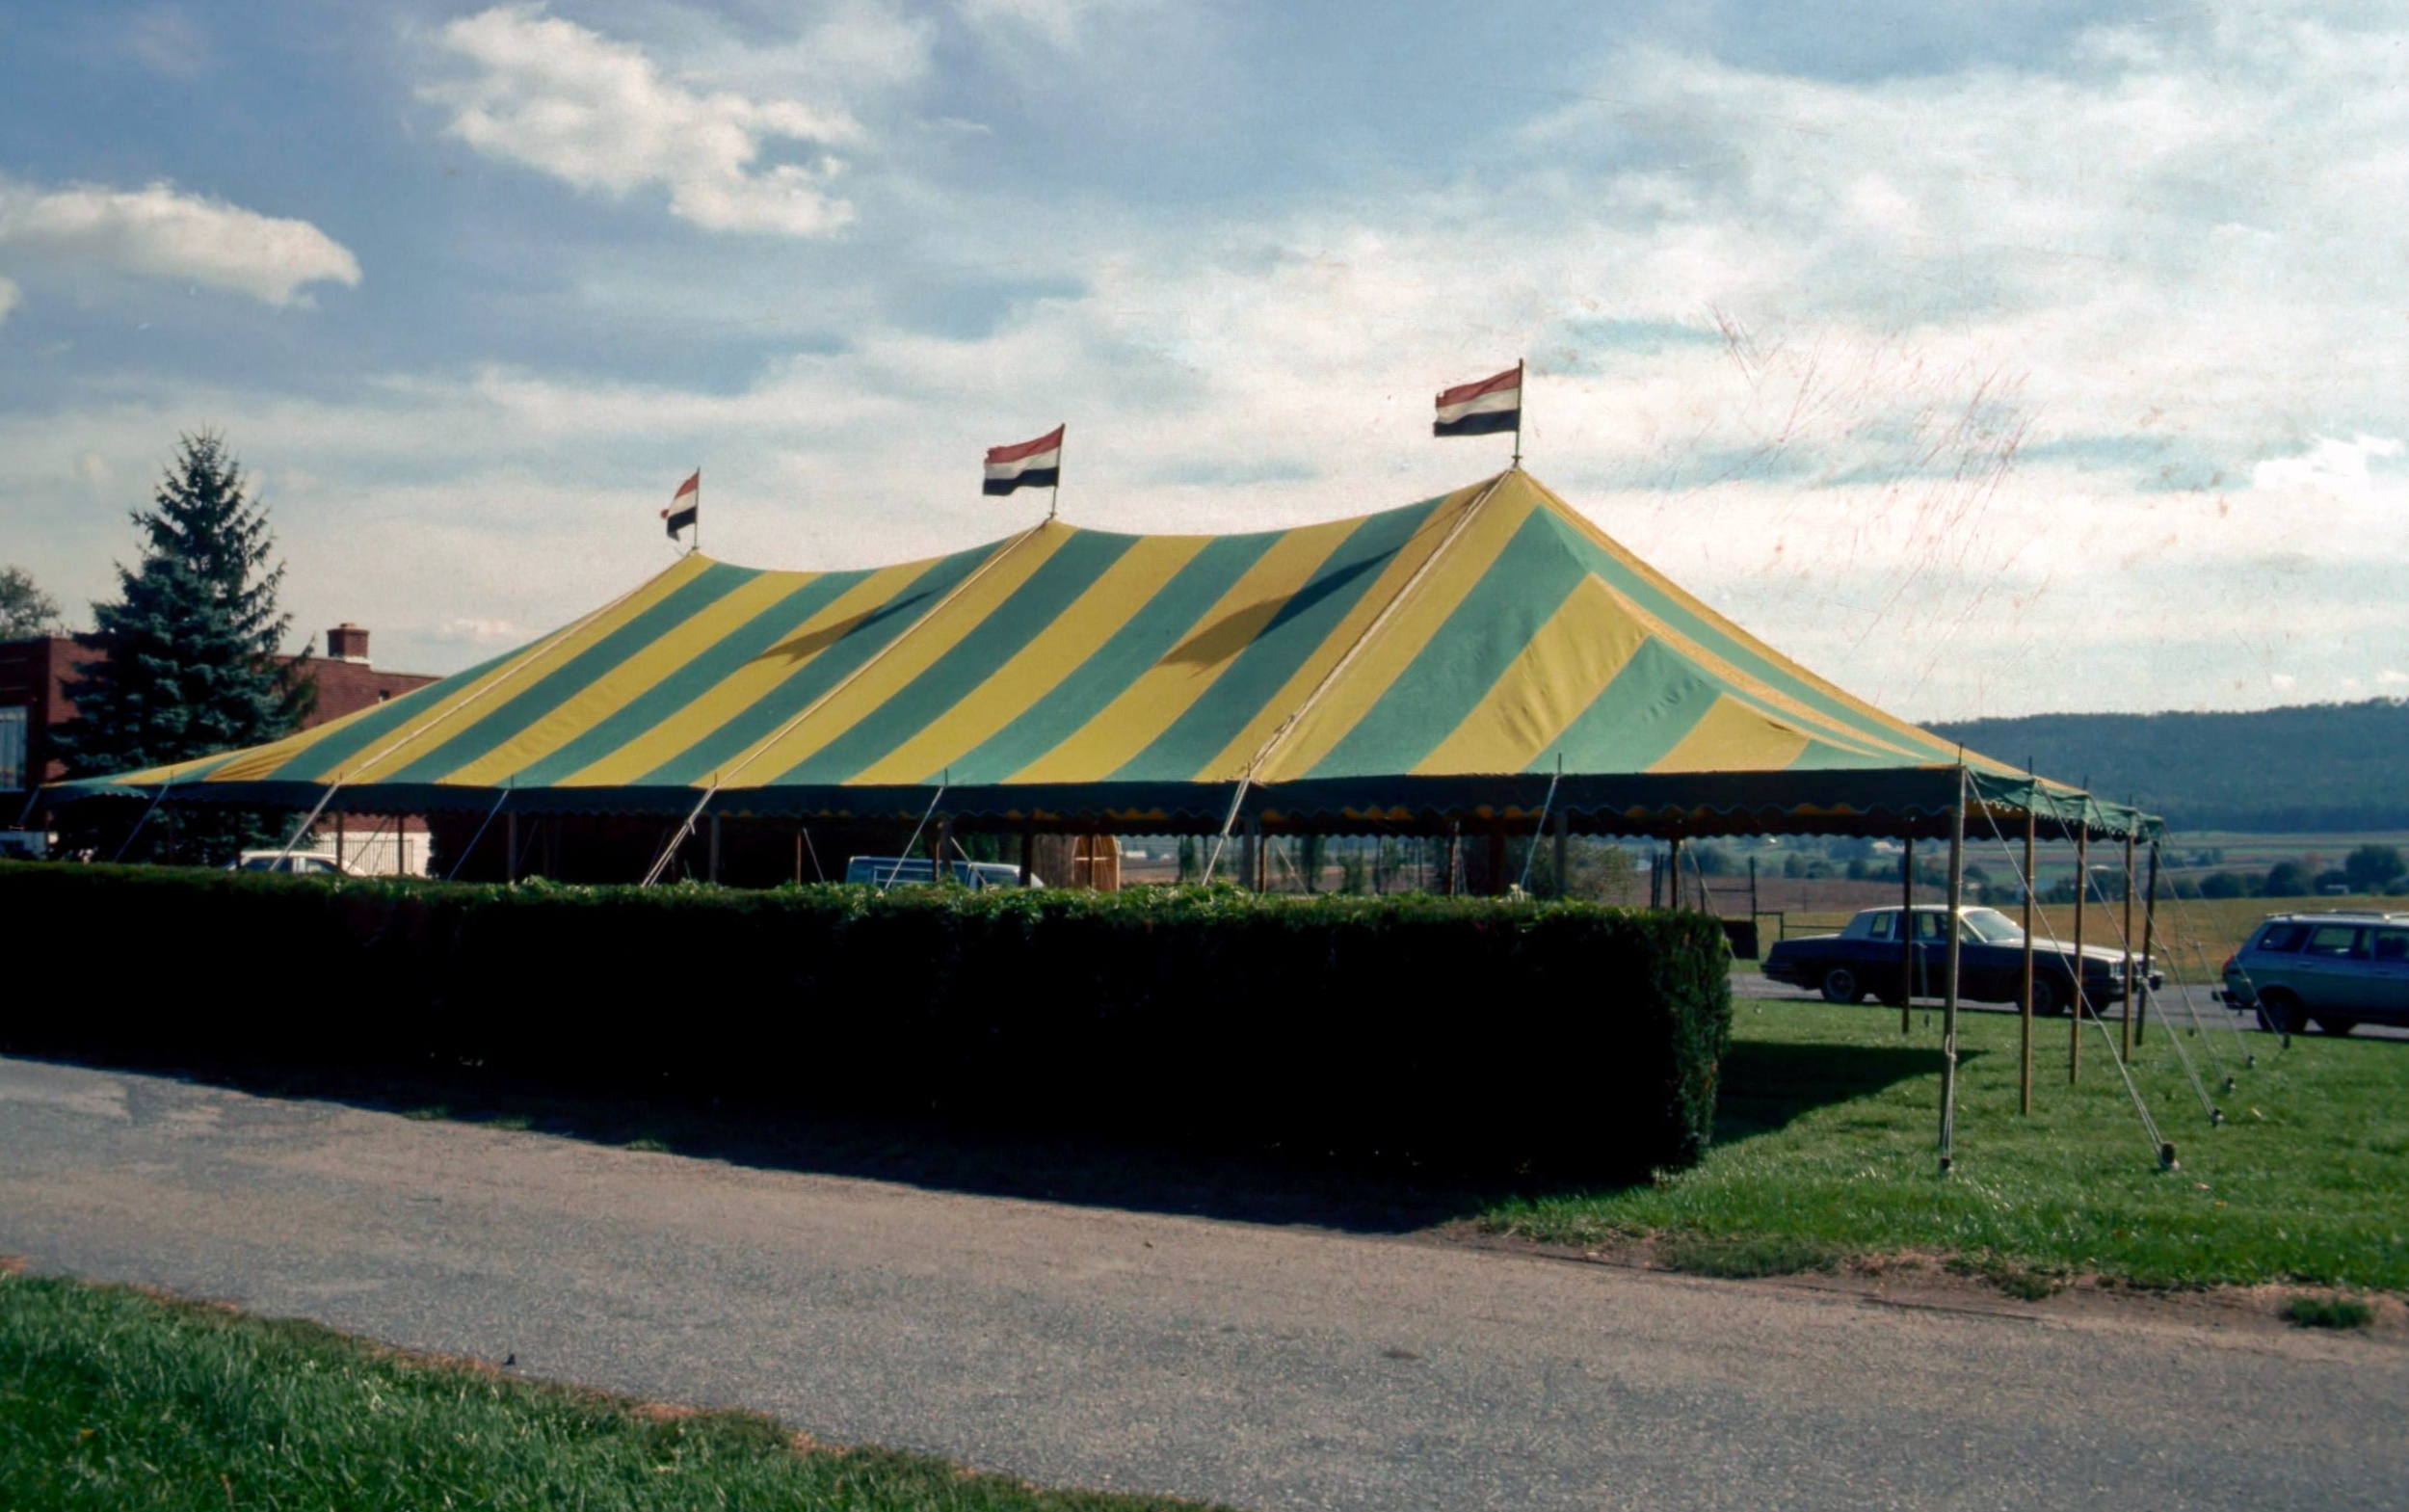 After gray and green tents, we bought green and yellow striped tents.